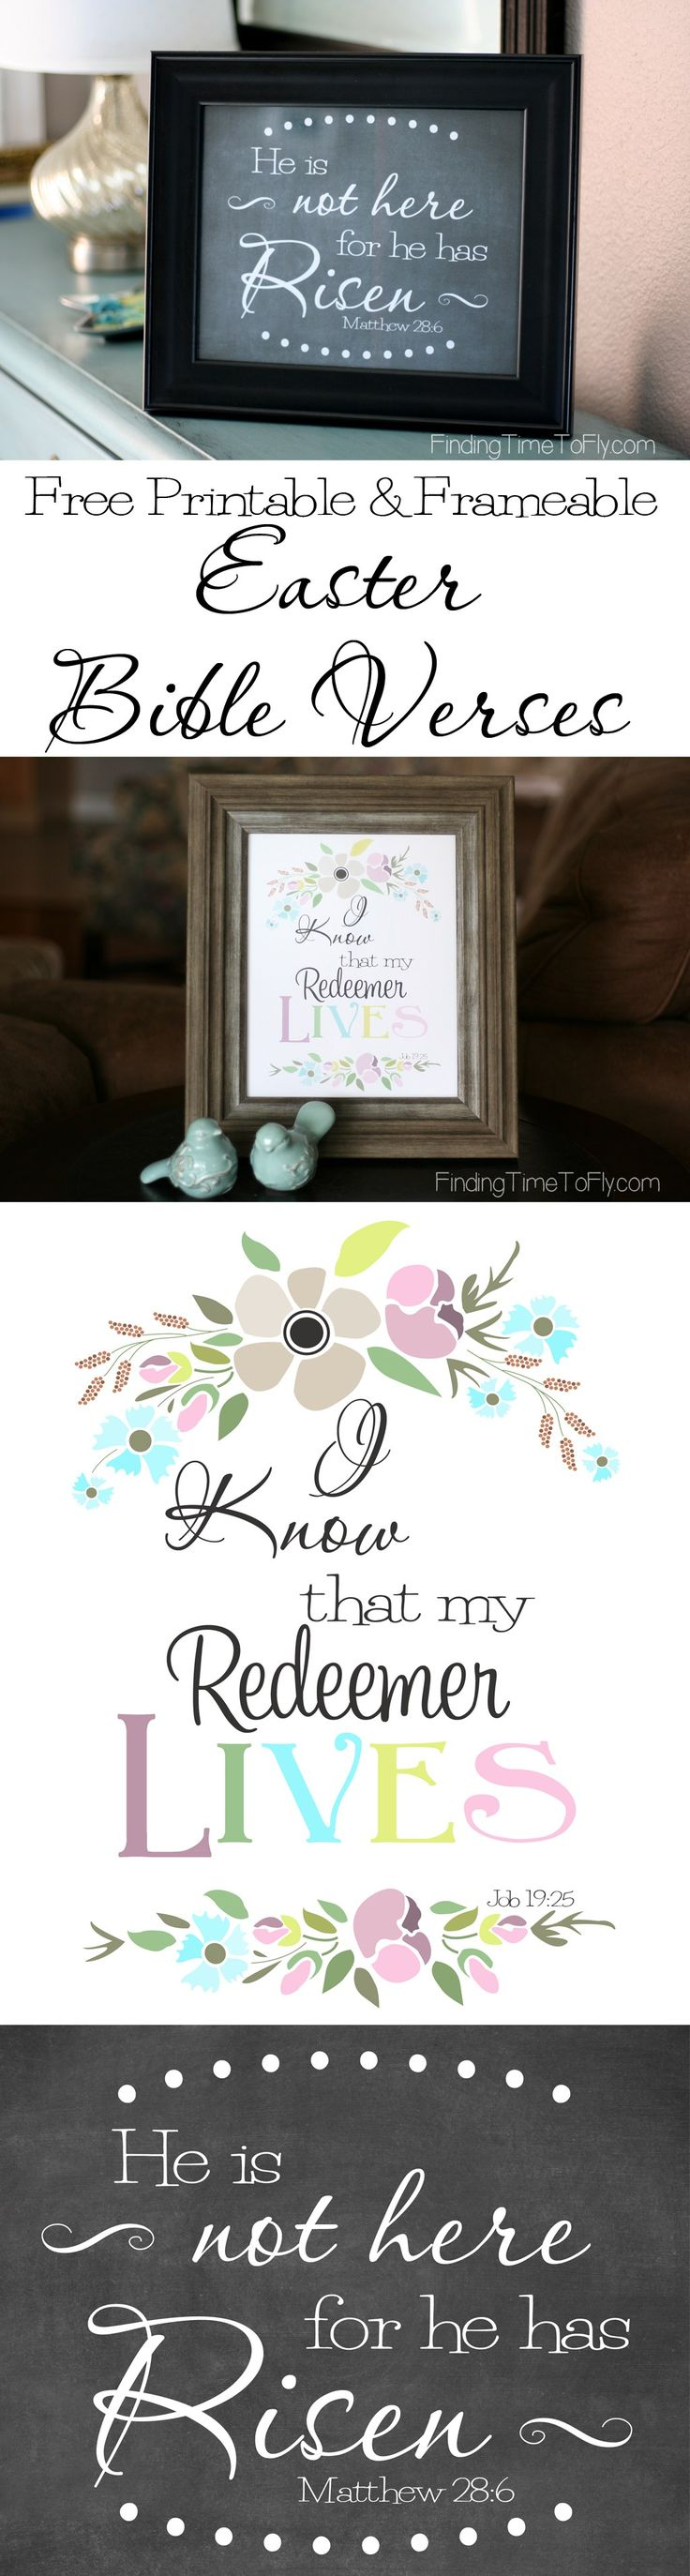 I love these Easter printables! They will make a great addition to my Easter decor.